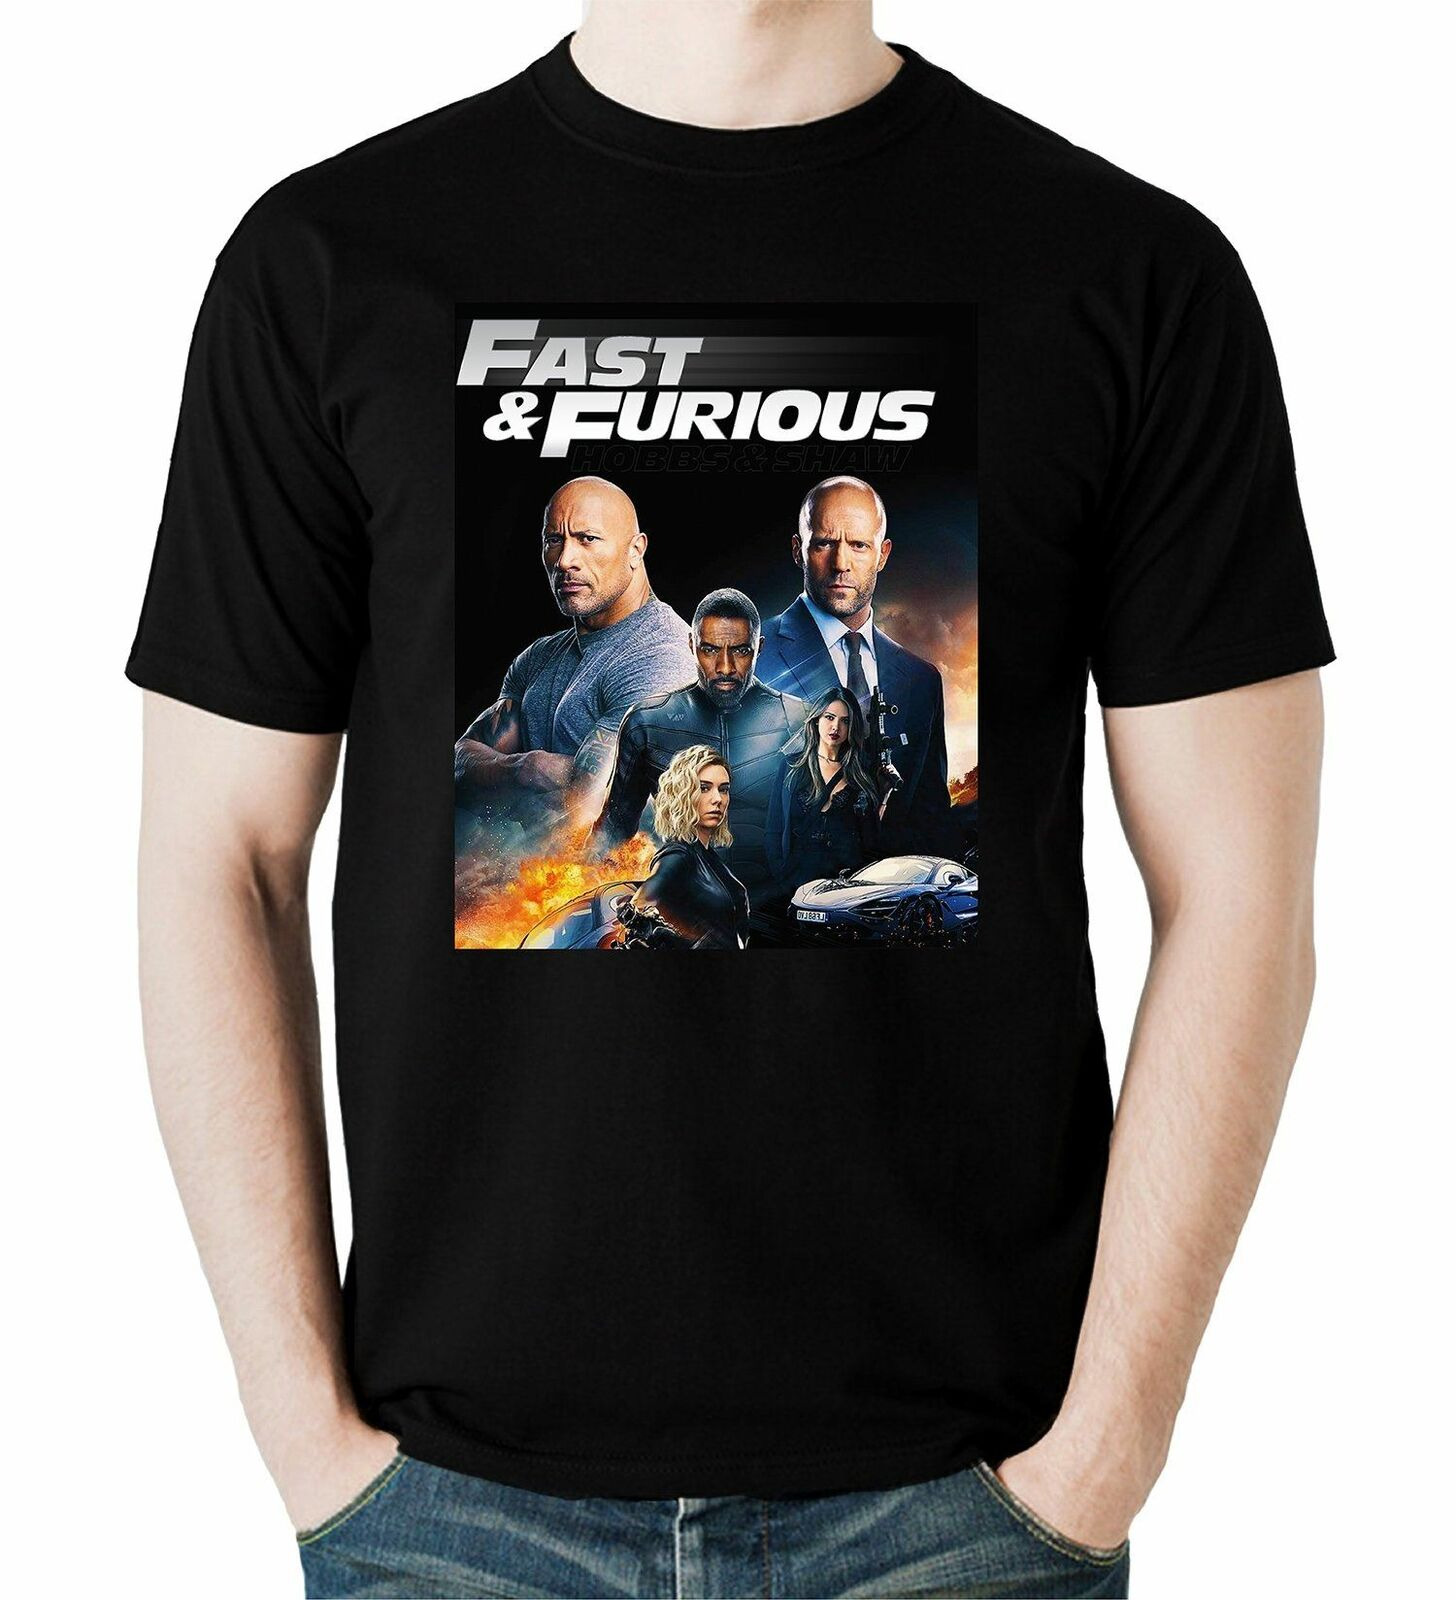 Fast & Furious Hobbs & Shaw T-Shirt Racing Sport Action Movie Men Black T-Shirt image